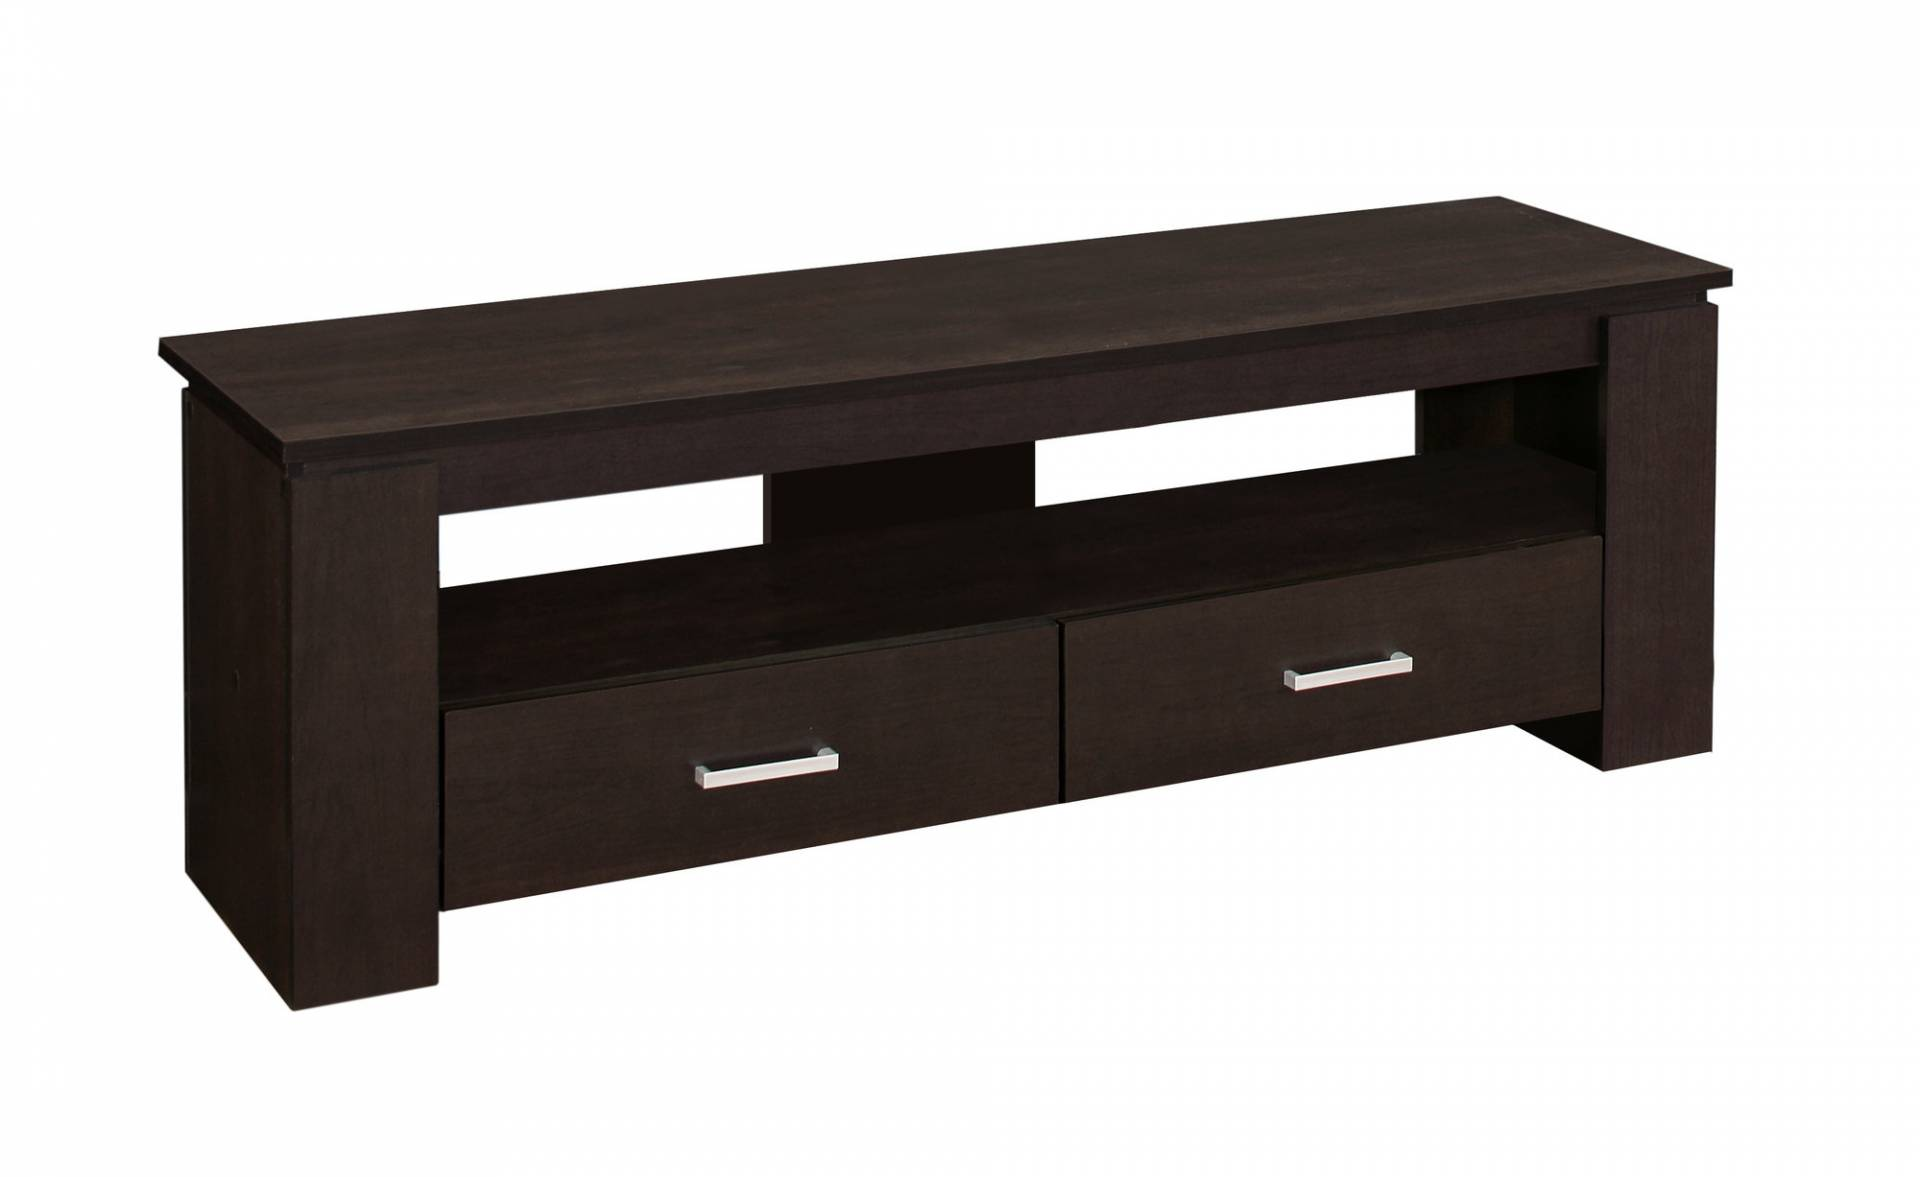 "Monarch 48"" Modern Wood Grain-Look Open Storage Shelf 2-Drawer Console TV Stand - Cappuccino Brown Finish from Monarch"